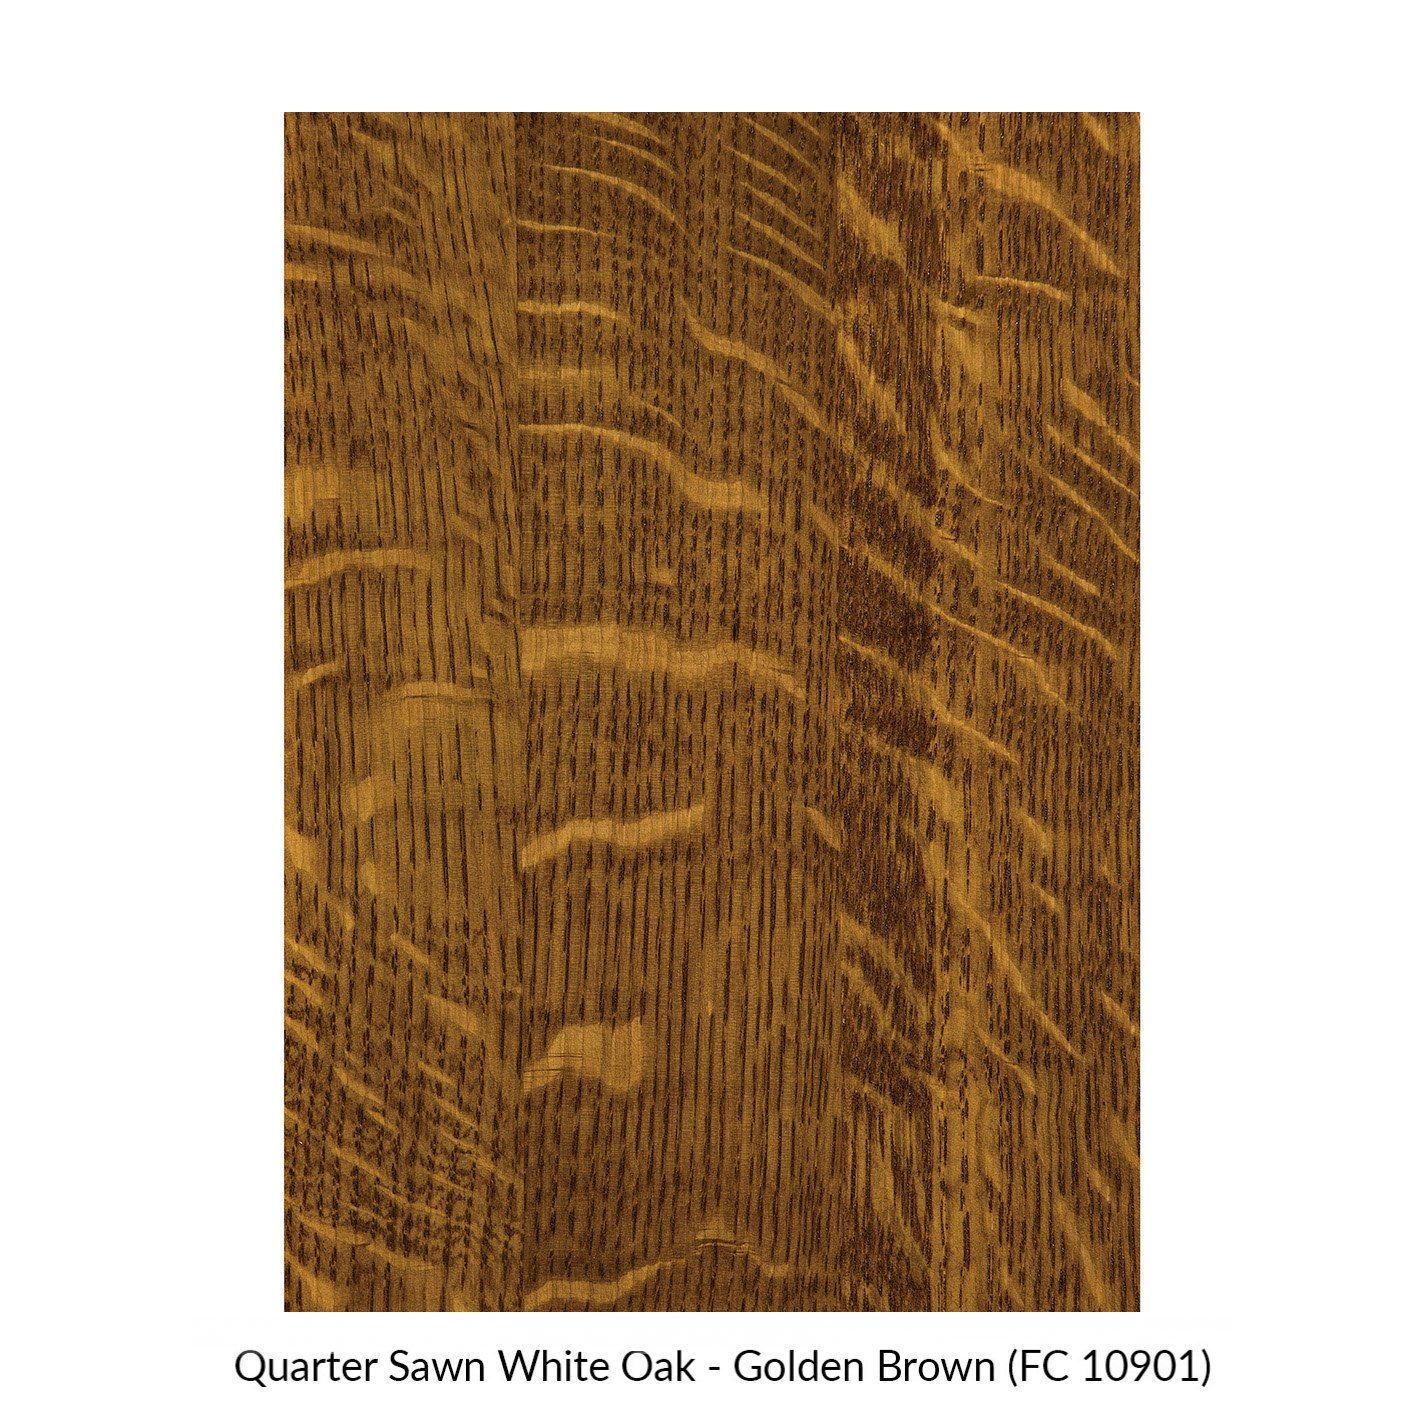 spectrum-quarter-sawn-white-oak-golden-pecan-fc-41610.jpg